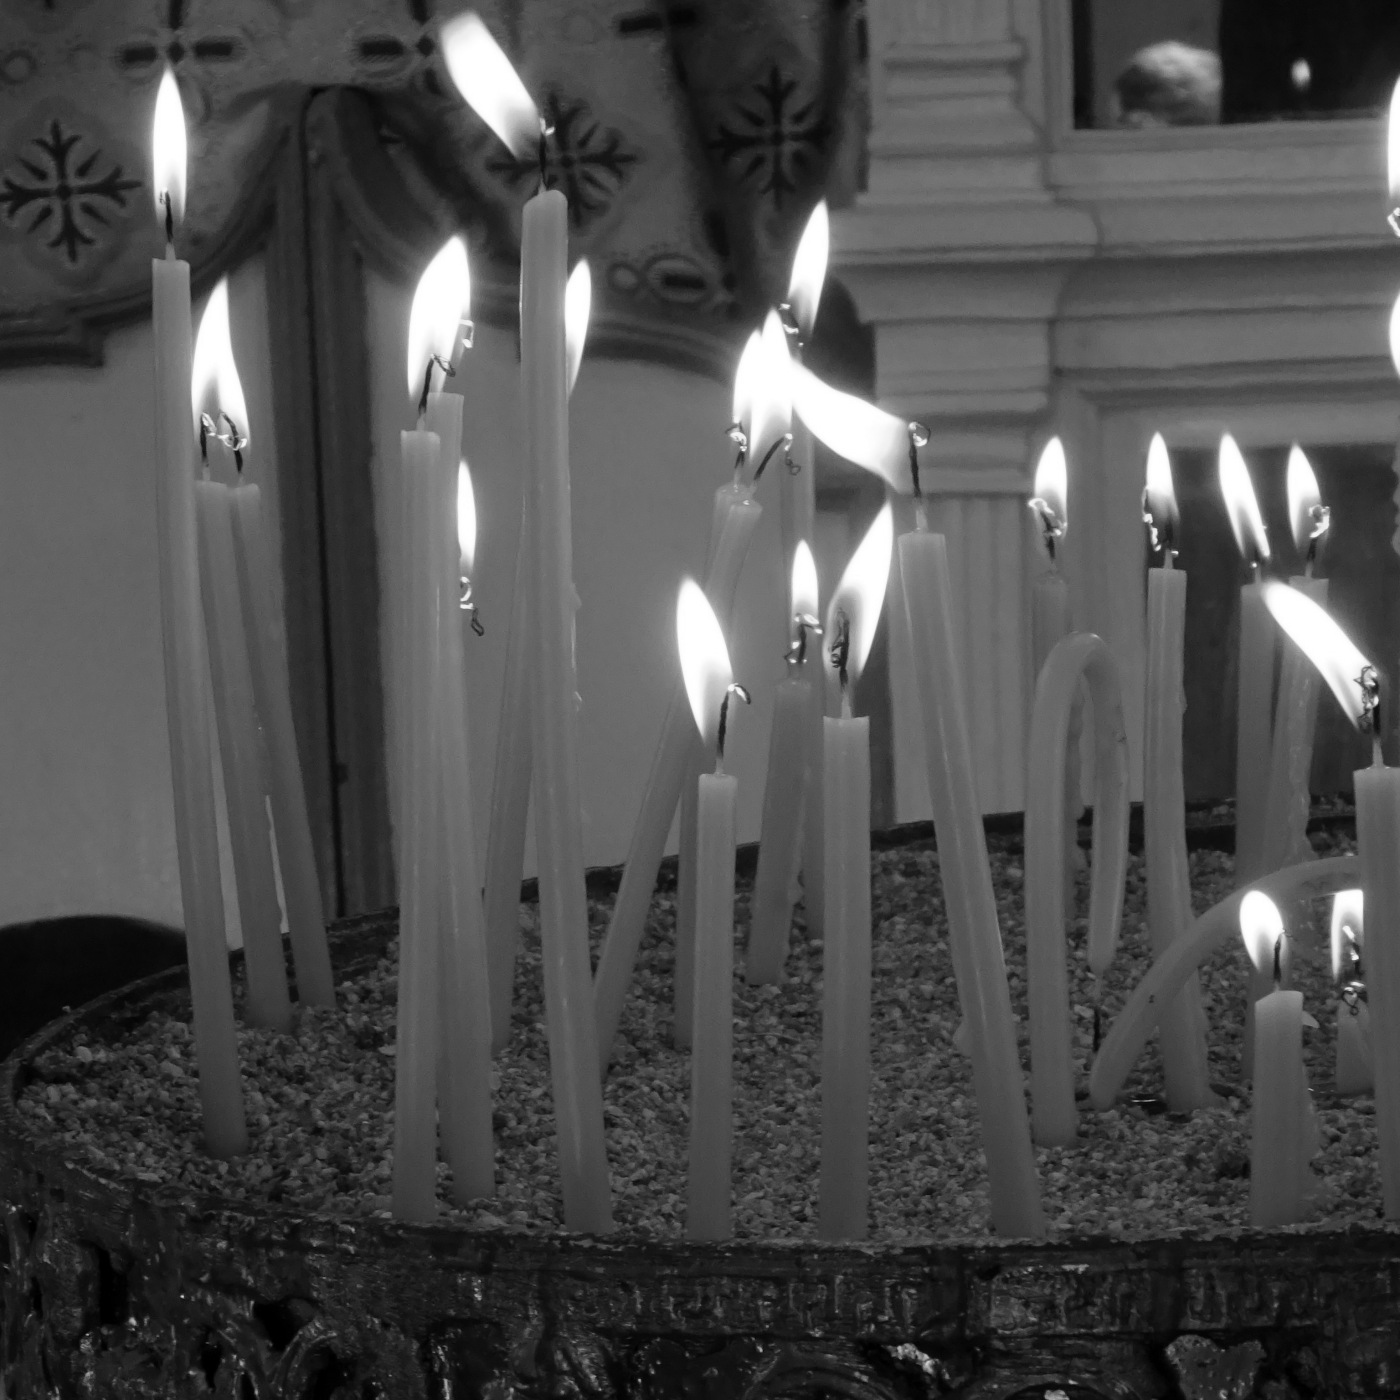 Long burning, and melting church candles